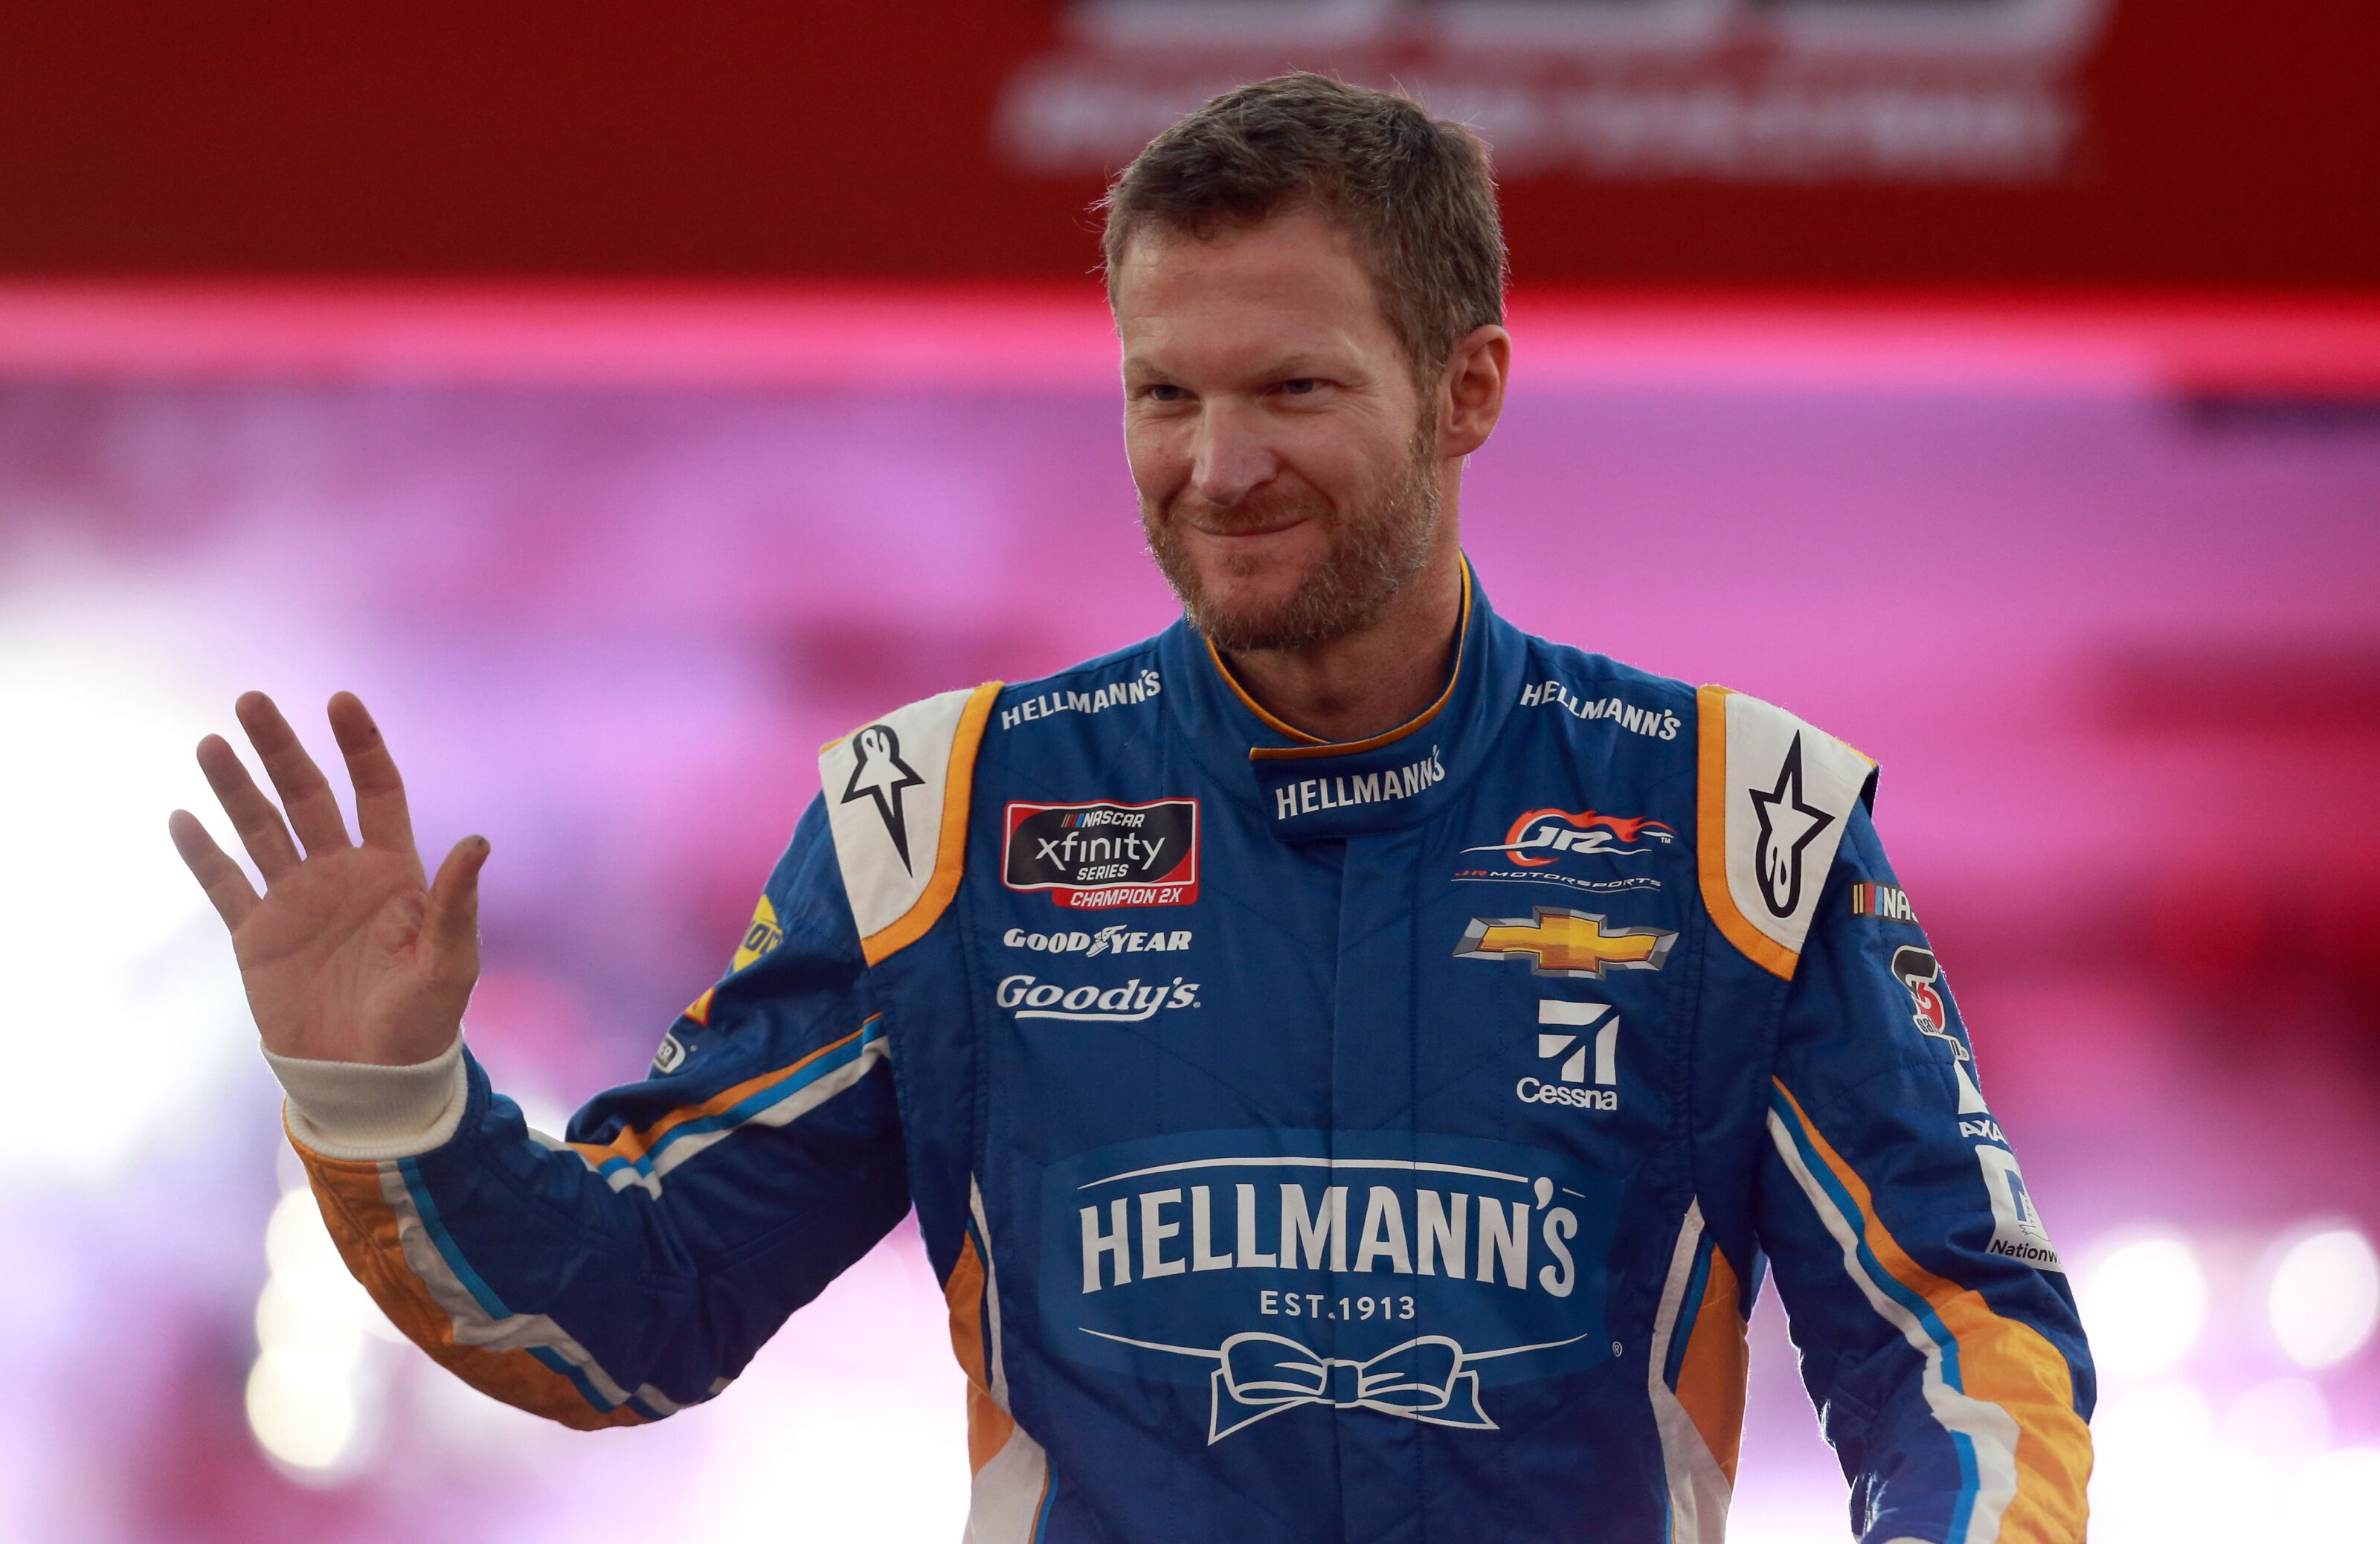 Dale Earnhardt Jr recalls when he knew it was time to retire from NASCAR